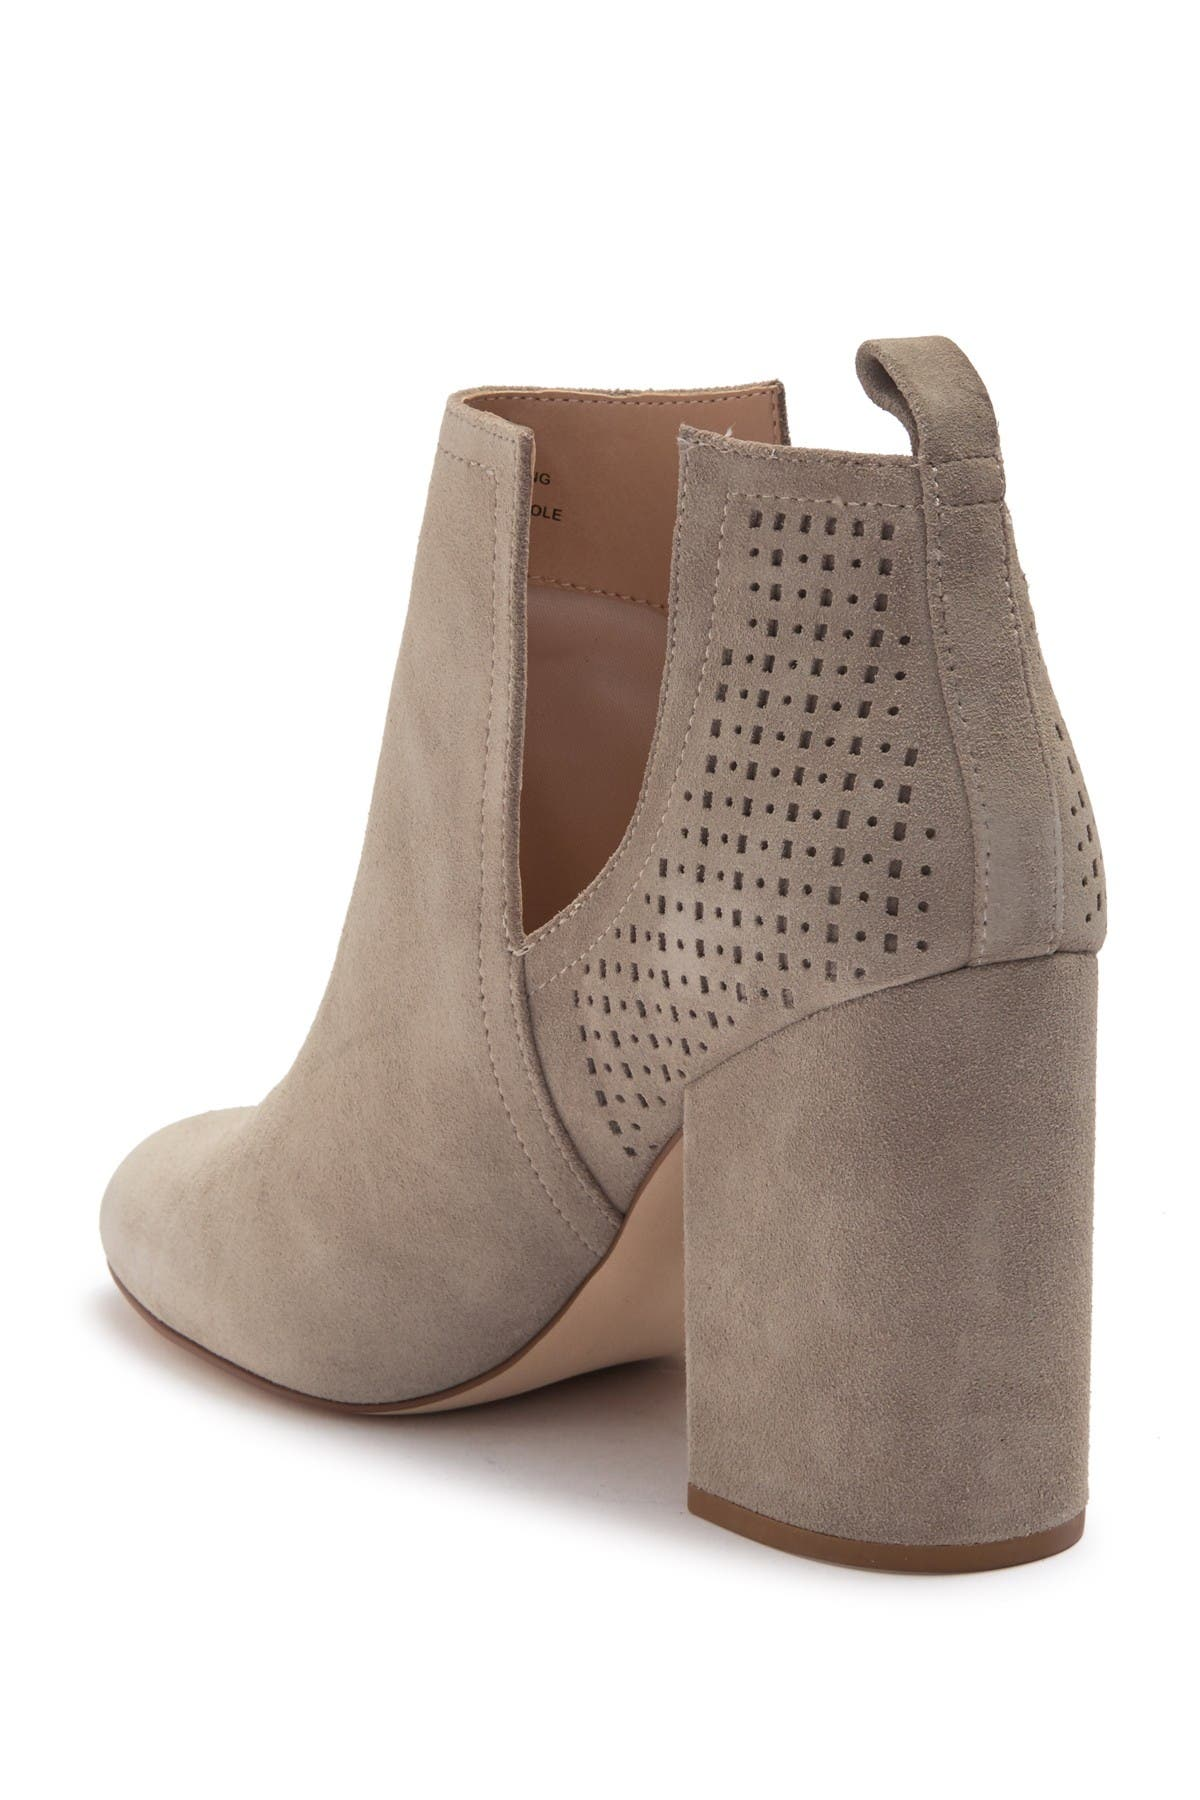 Norelle Perforated Suede Ankle Boot